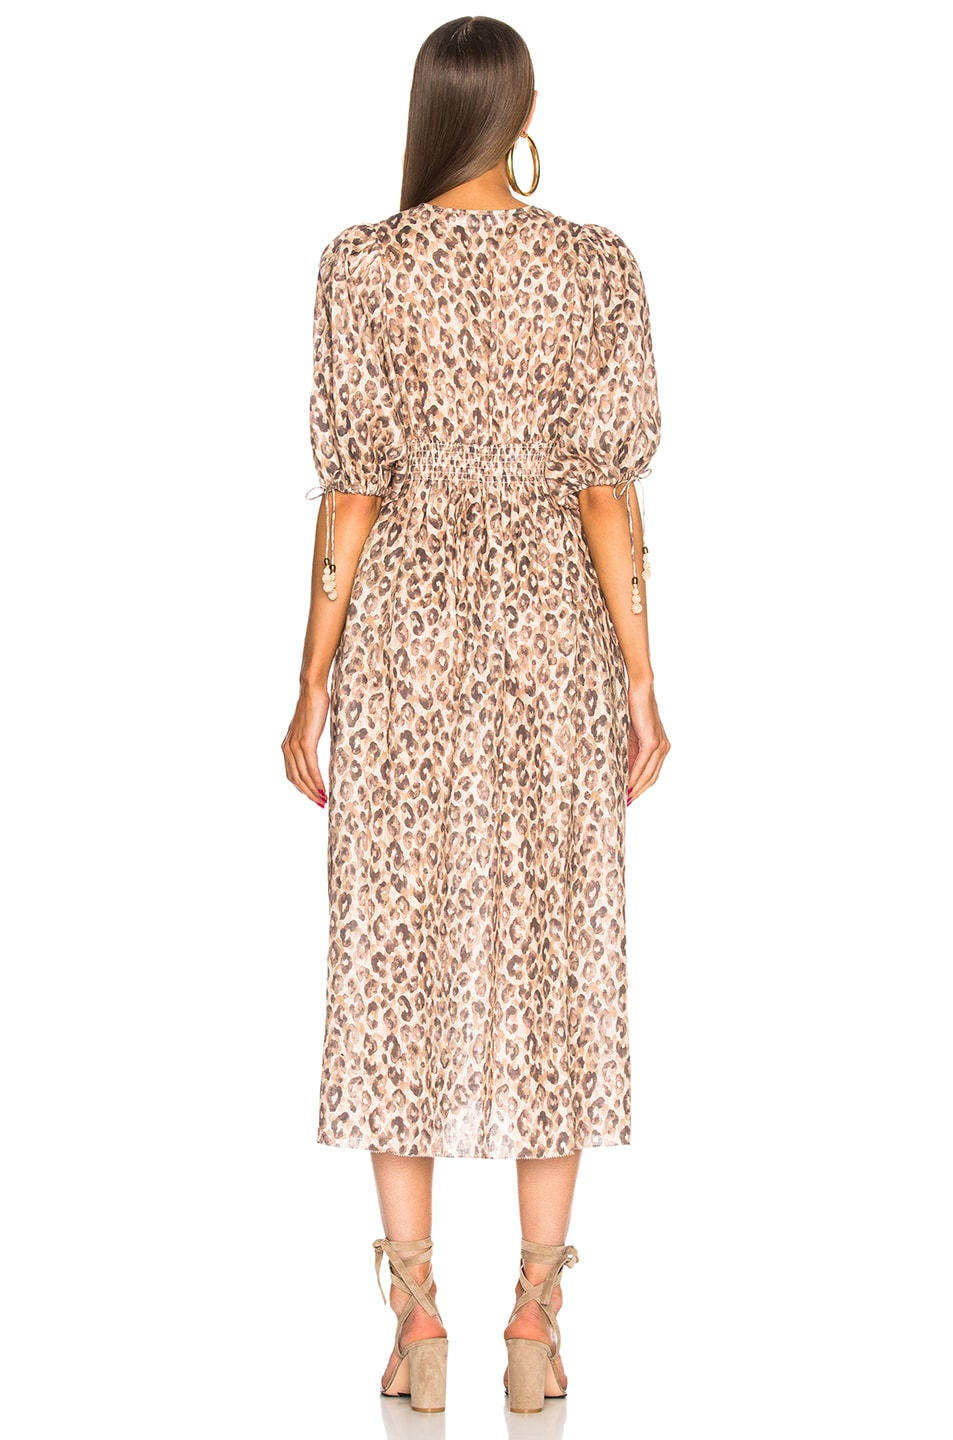 a03c87fd04 Image 3 of Zimmermann Melody Shirred Waist Dress in Leopard